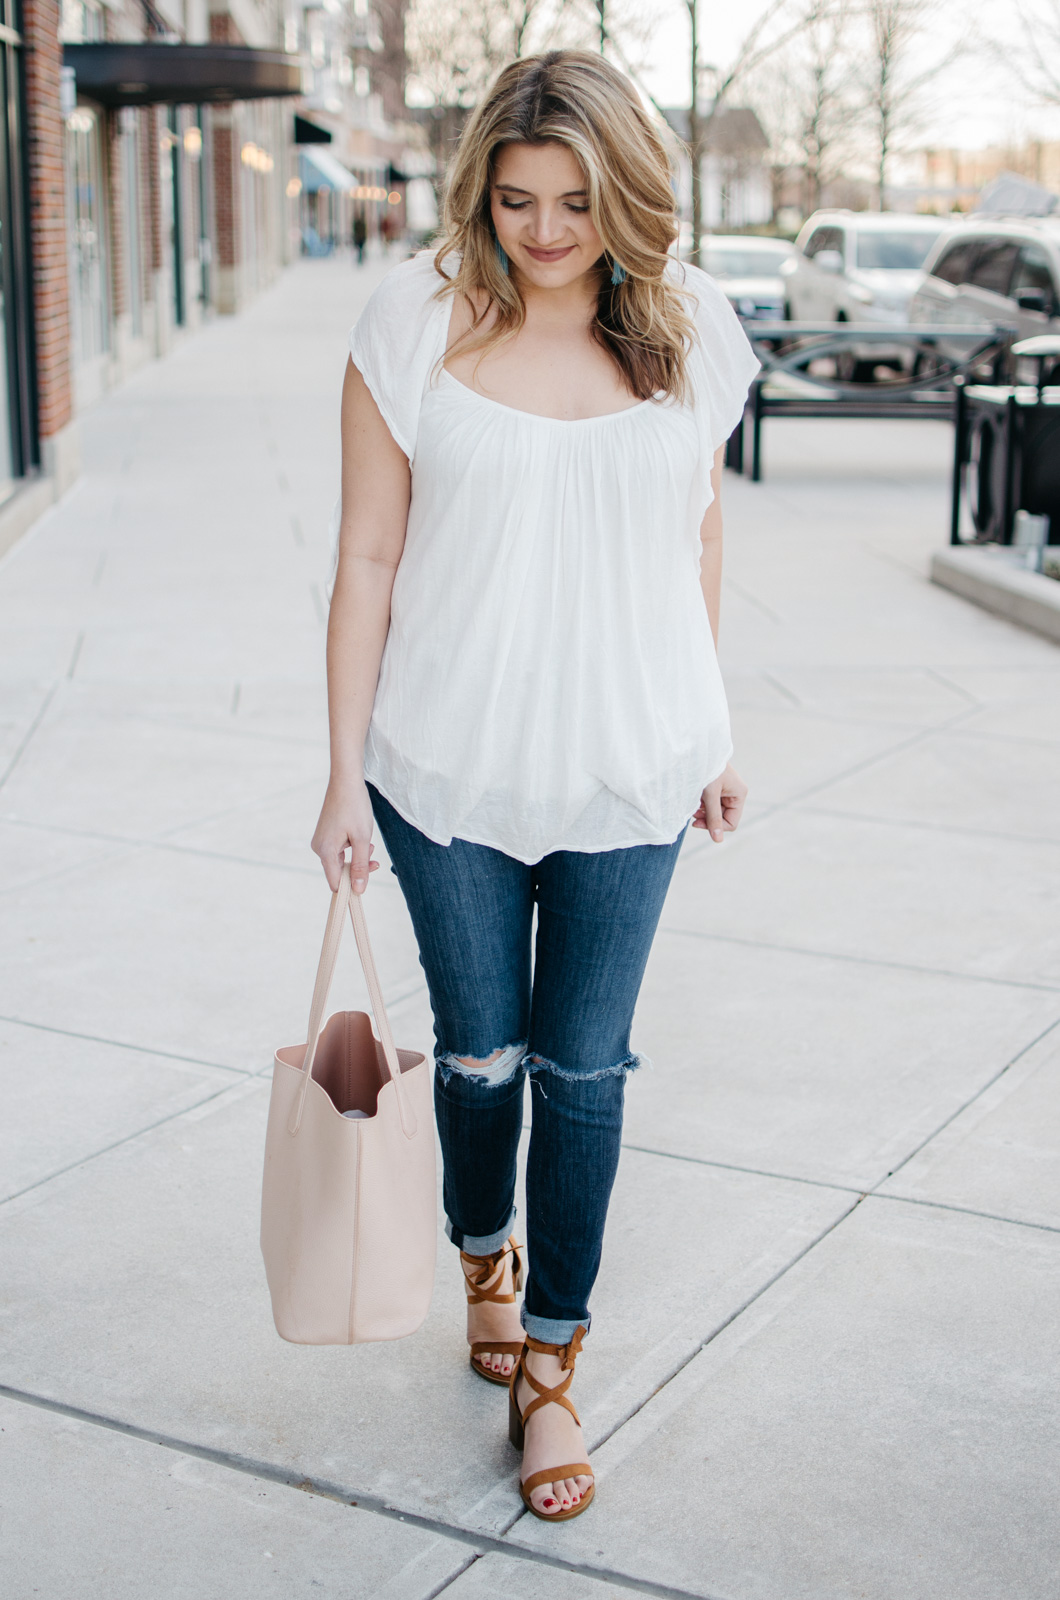 weekend outfit ideas spring - | Click through for more spring outfit ideas or to shop the look! www.bylaurenm.com